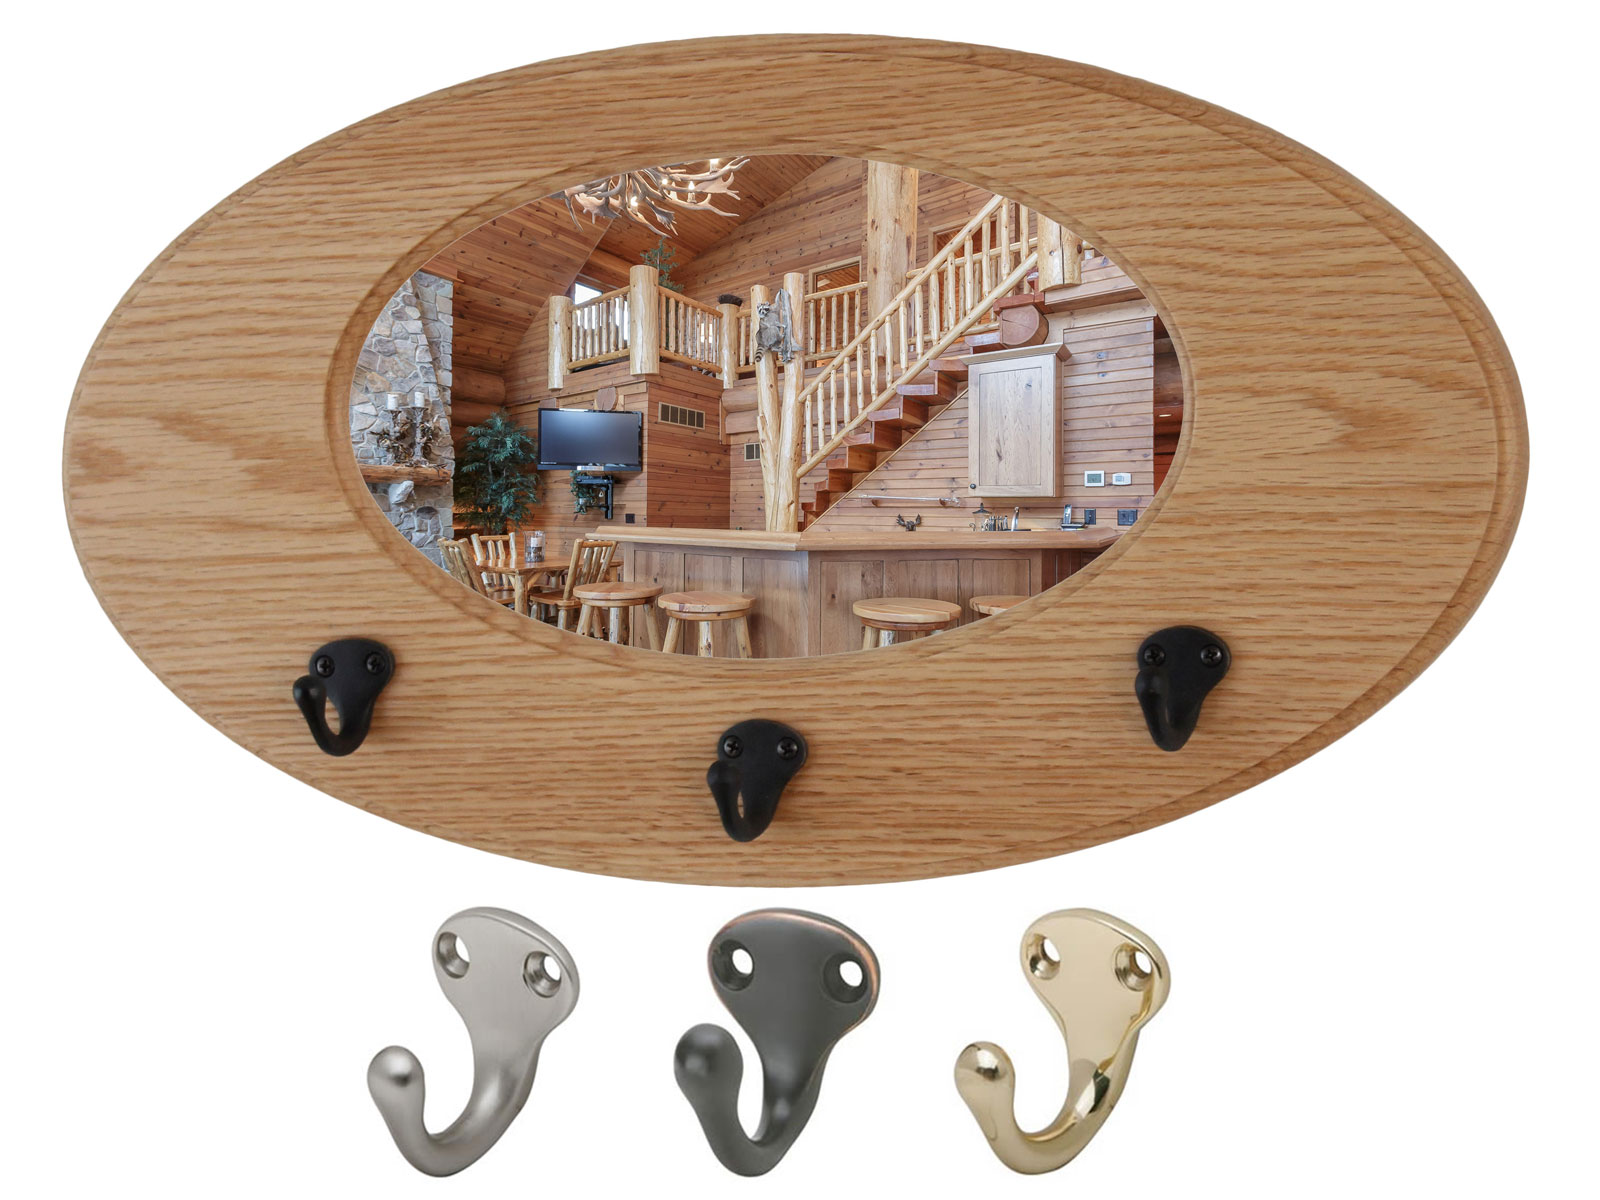 Oak Oval Mirror Coat Rack - Solid Oak -  Hand Crafted in The USA   Select  Bronze, Solid Brass or Satin Nickel single  Style Hooks